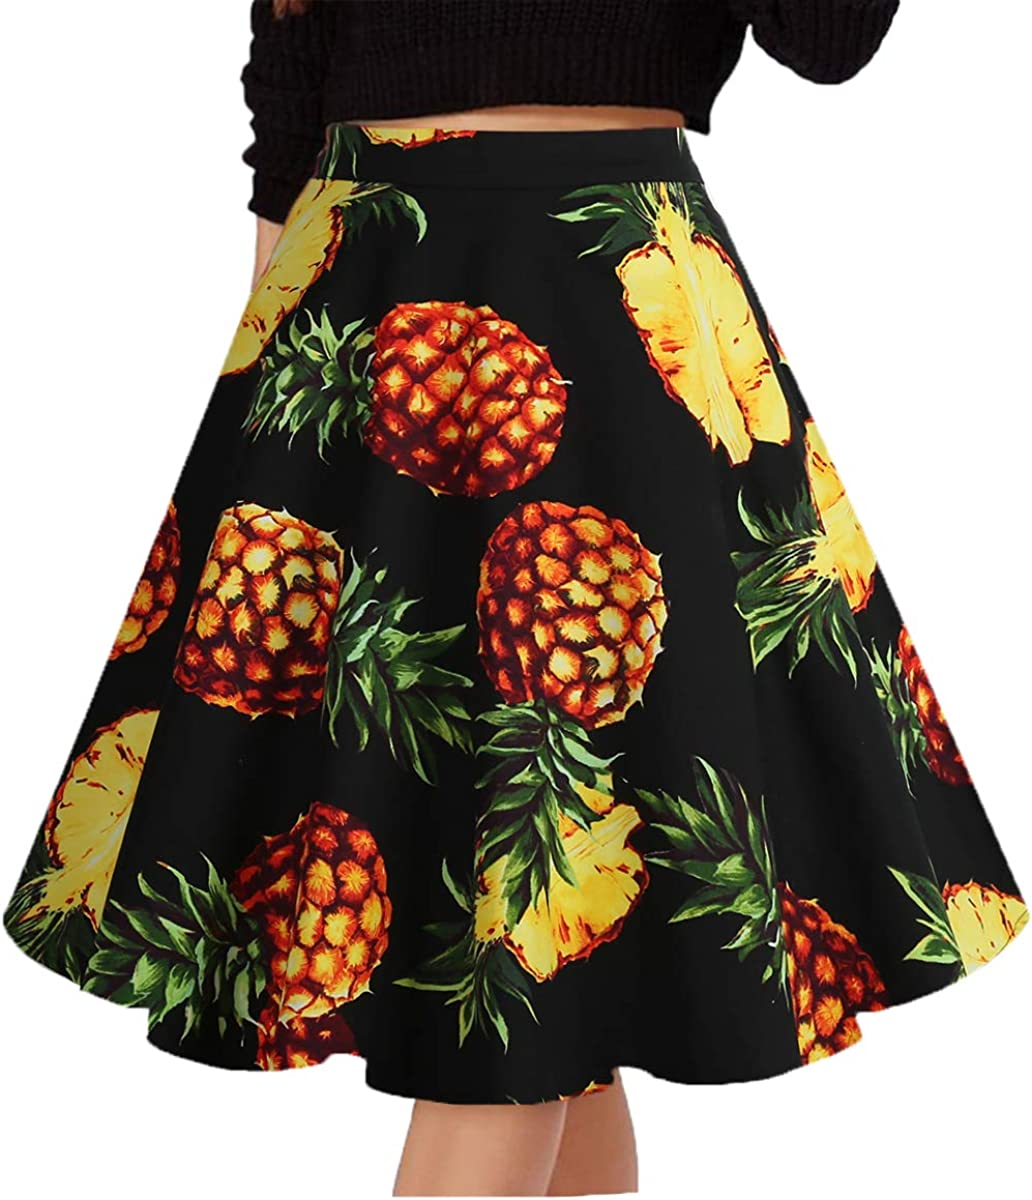 Musever Women's Pleated Vintage Skirts Floral Print Casual Midi Skirt A-Black-Pineapple XXL